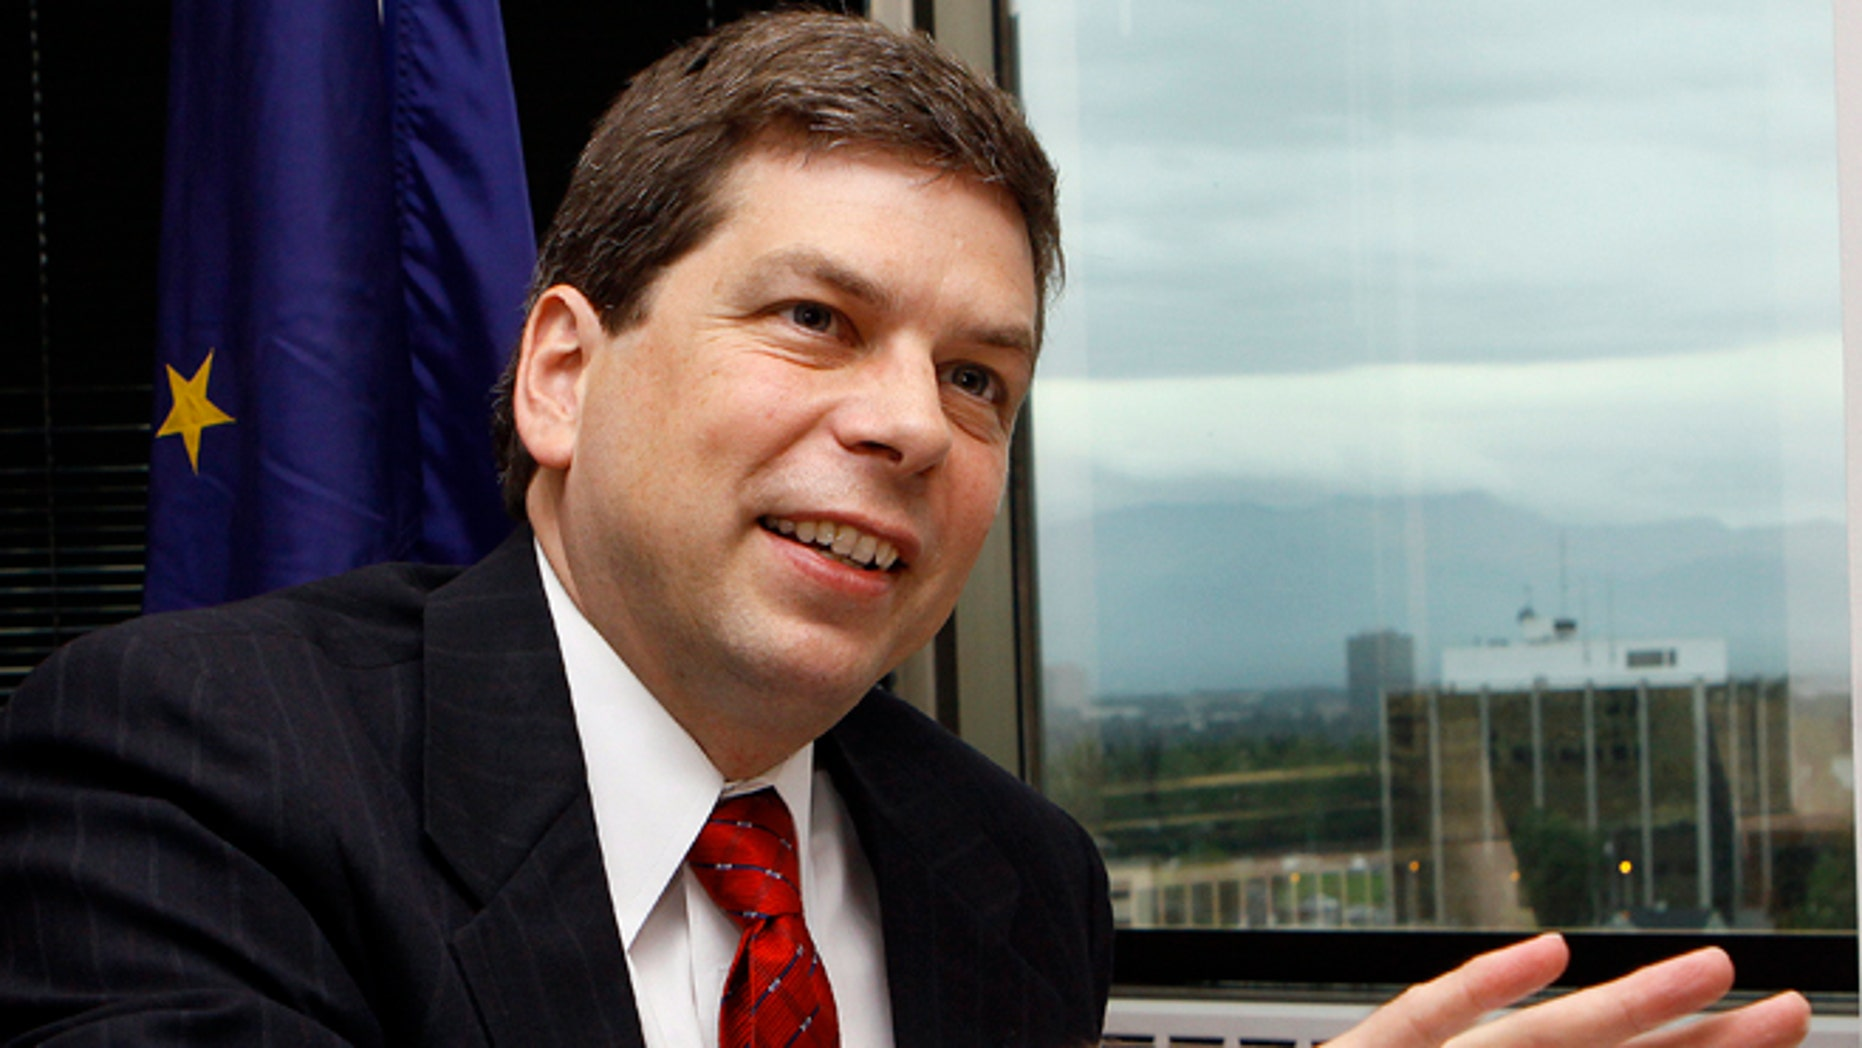 FILE: Udated: Sen. Mark Begich, D-Alaska, talks about his trip on Wednesday to Bethel and Hooper Bay in Anchorage, Alaska. Far from reversing course, Senate Democrats who backed President Barack Obamas health care law and now face re-election in GOP-leaning states are reinforcing their support for the overhaul even as Republicans intensify their criticism. Begich, Mark Pryor of Arkansas, Mary Landrieu of Louisiana and Kay Hagan of North Carolina will face voters in 2014 for the first time since voting for the Affordable Care Act _ commonly called Obamacare _ three years ago. (AP Photo/Al Grillo, File)